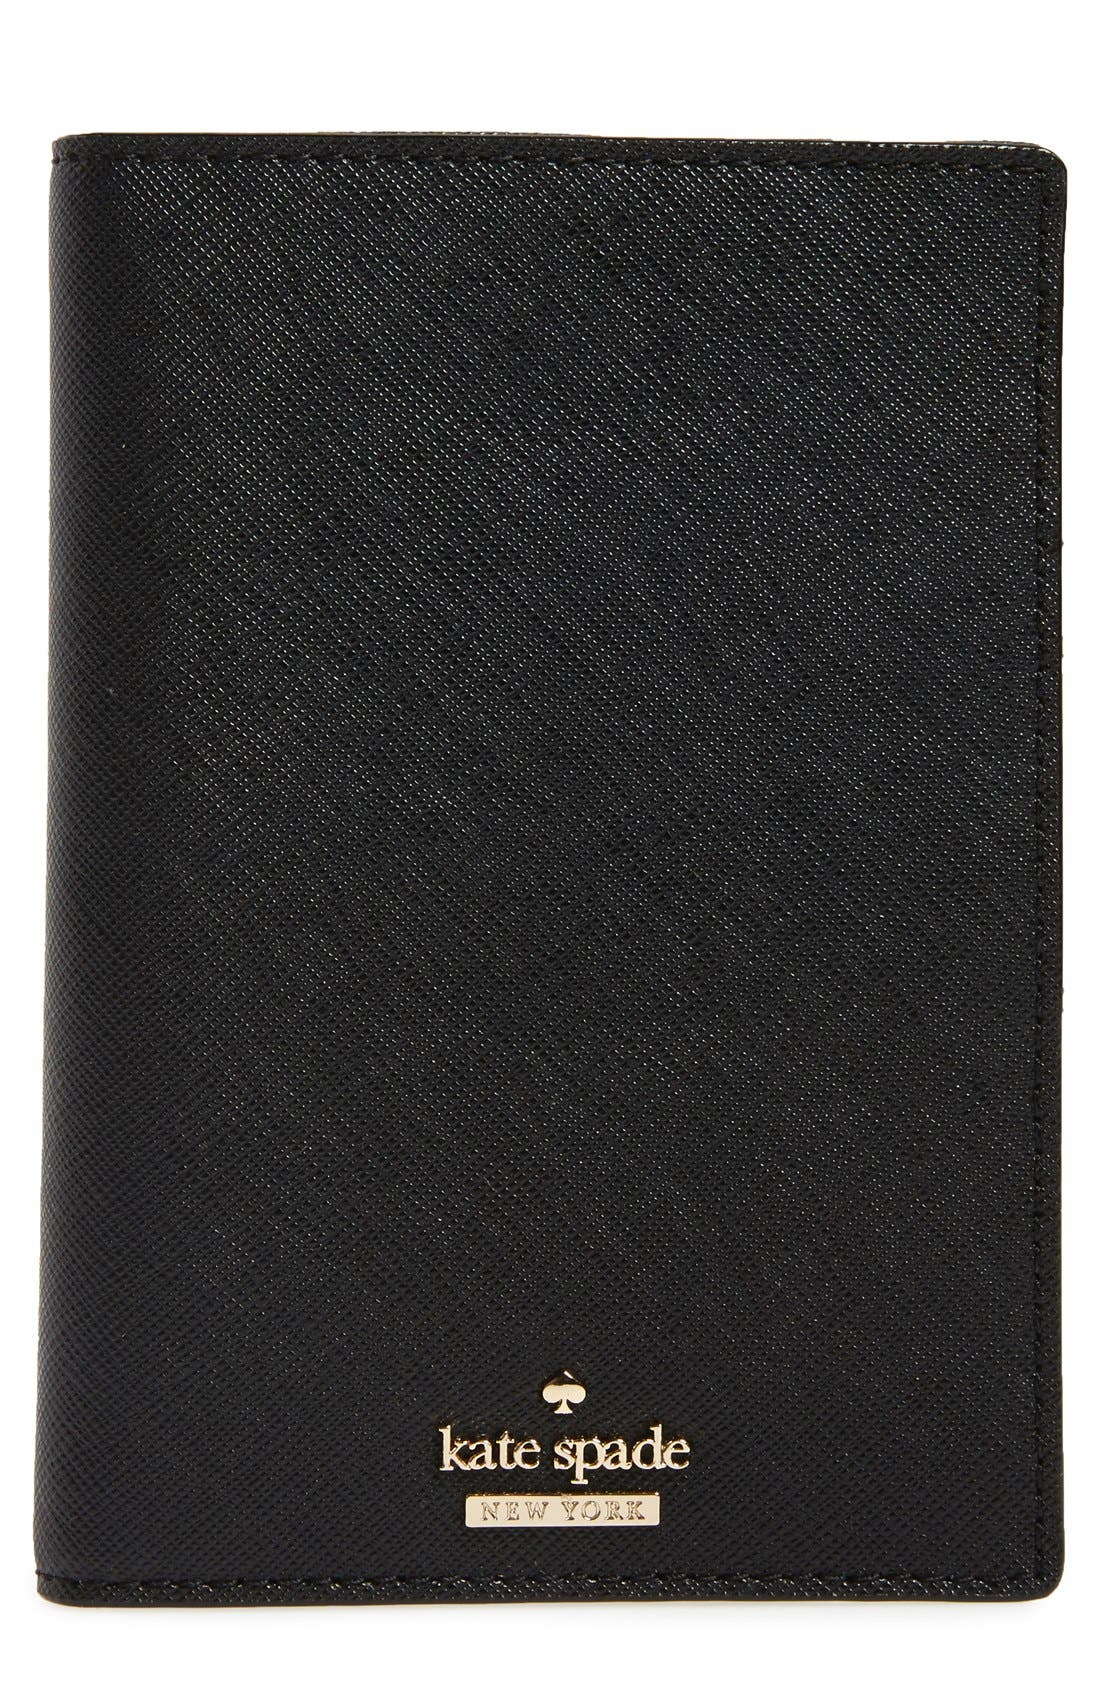 'cameron street' leather passport holder,                             Main thumbnail 1, color,                             Black